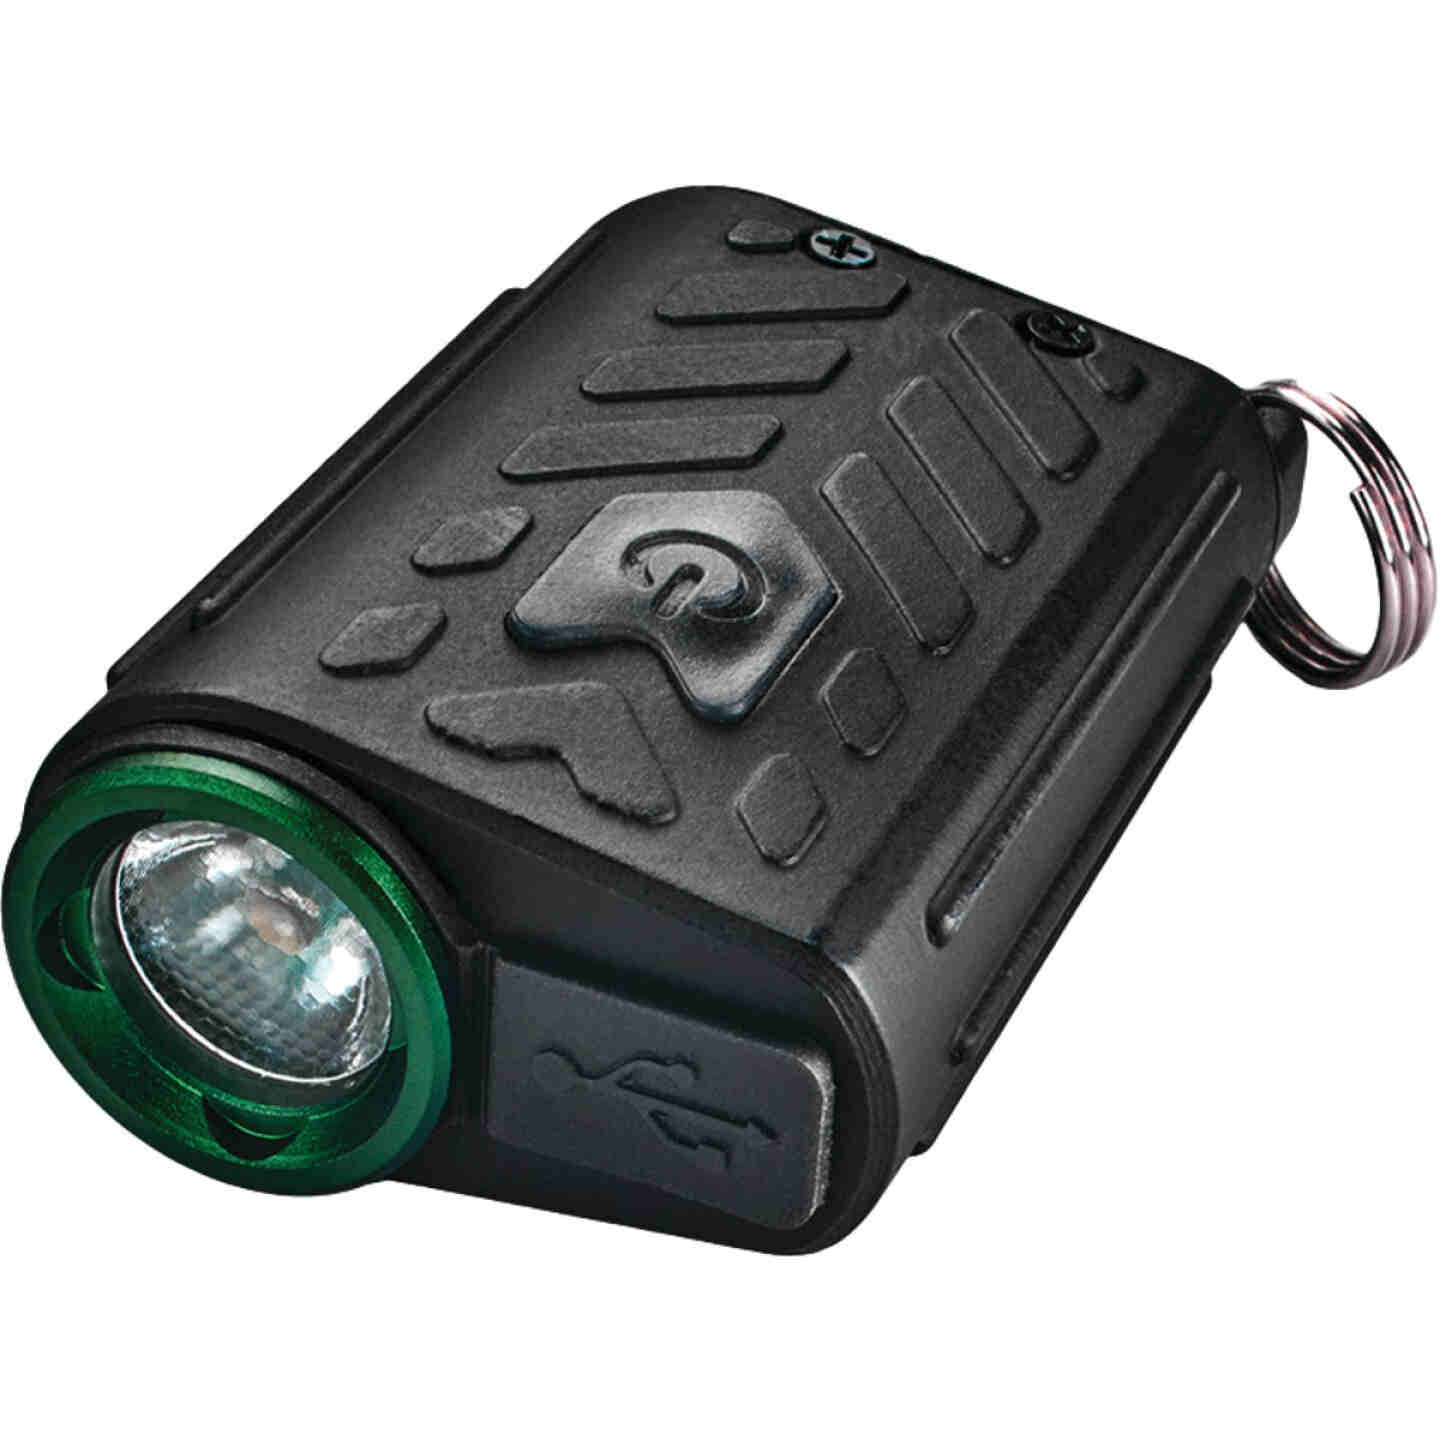 Police Security Seeker-R 150 Lm. Rechargeable LED Keychain Light Image 4